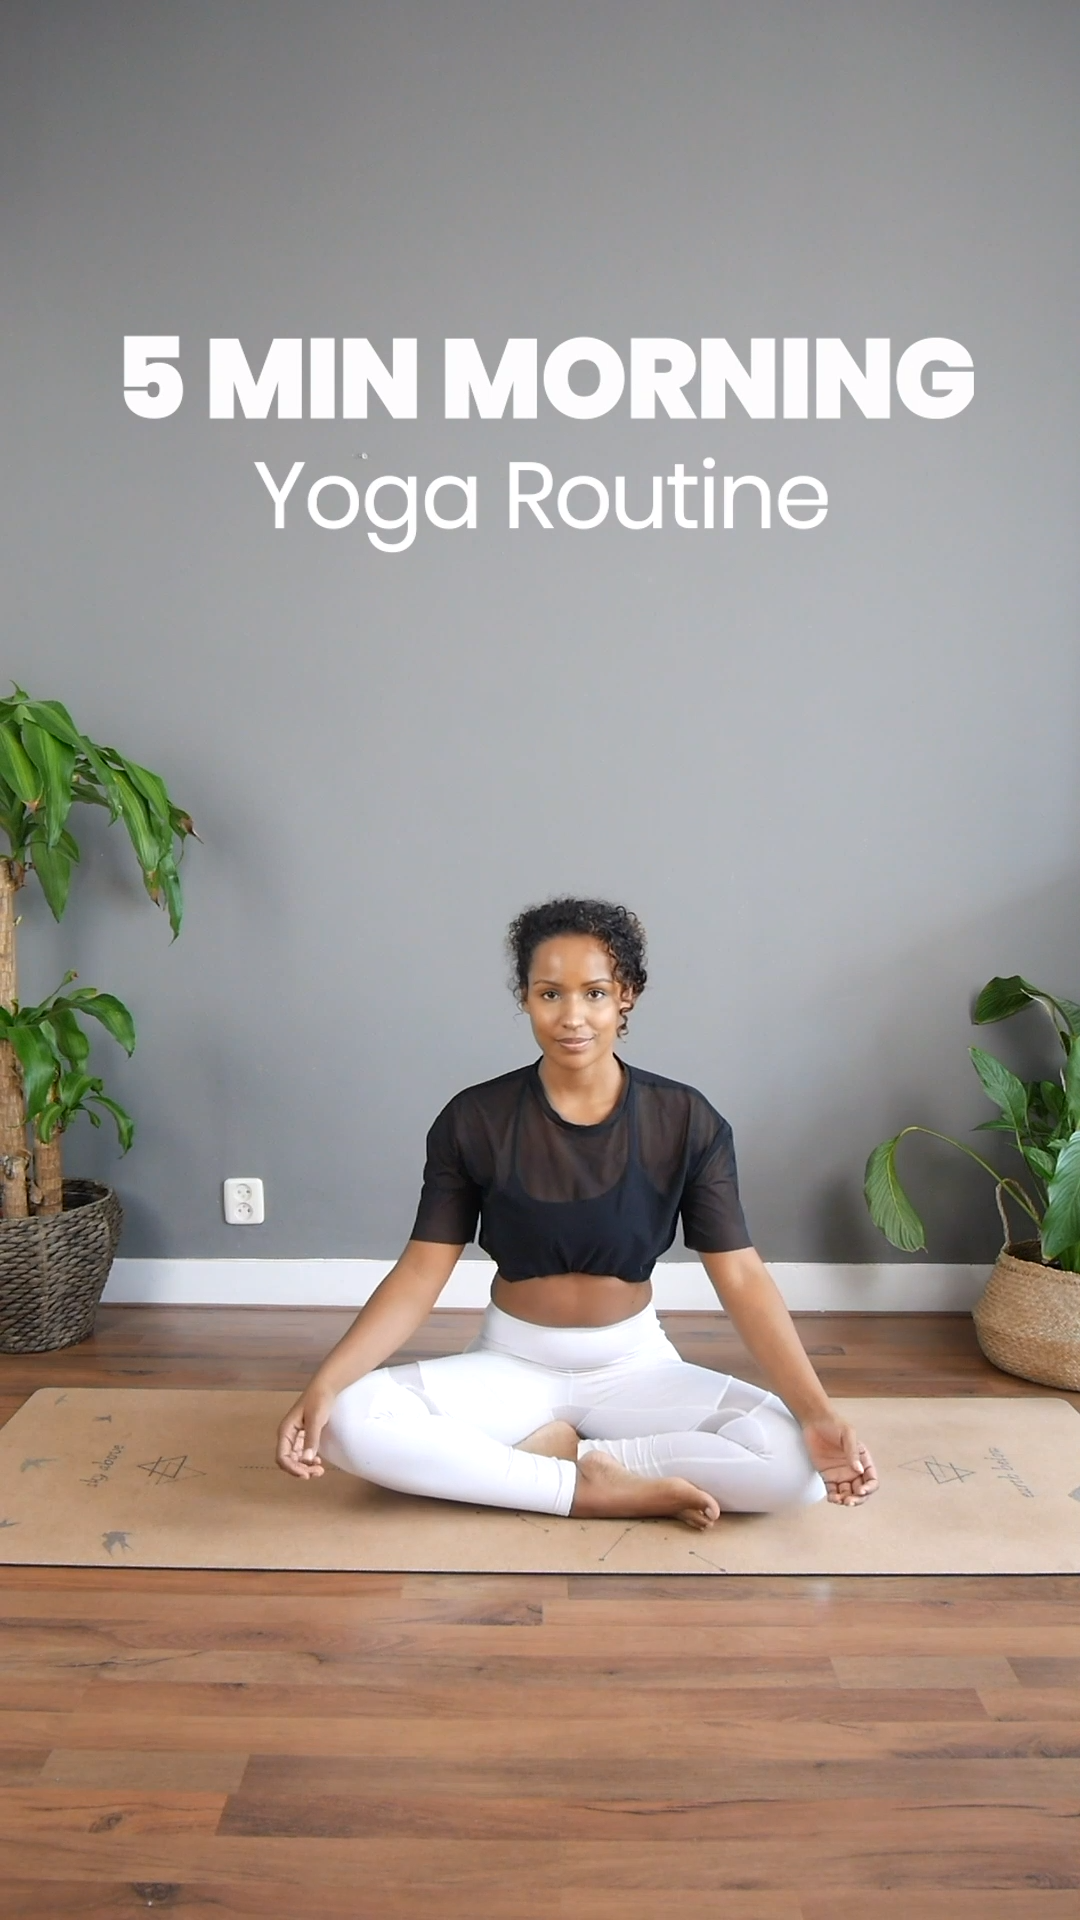 5 MIN MORNING YOGA ROUTINE ⠀ There is no better way to start your day, then with a #yogaflow to stretch and wake up your body!   Do this easy 5 min routine, when you don't have a lot of time, but still want to move my body! ⠀ What's your morning routine like?  ⠀ For more yoga Flows check out our playbook app! Start your practice with us   #Yoga#YogaFacts#forsleep#foranxiety#forhealing#forbeginners#spirituality#midfulness#morning#innerpeace#videos#visualization#relaxation#affirmations#motivation#